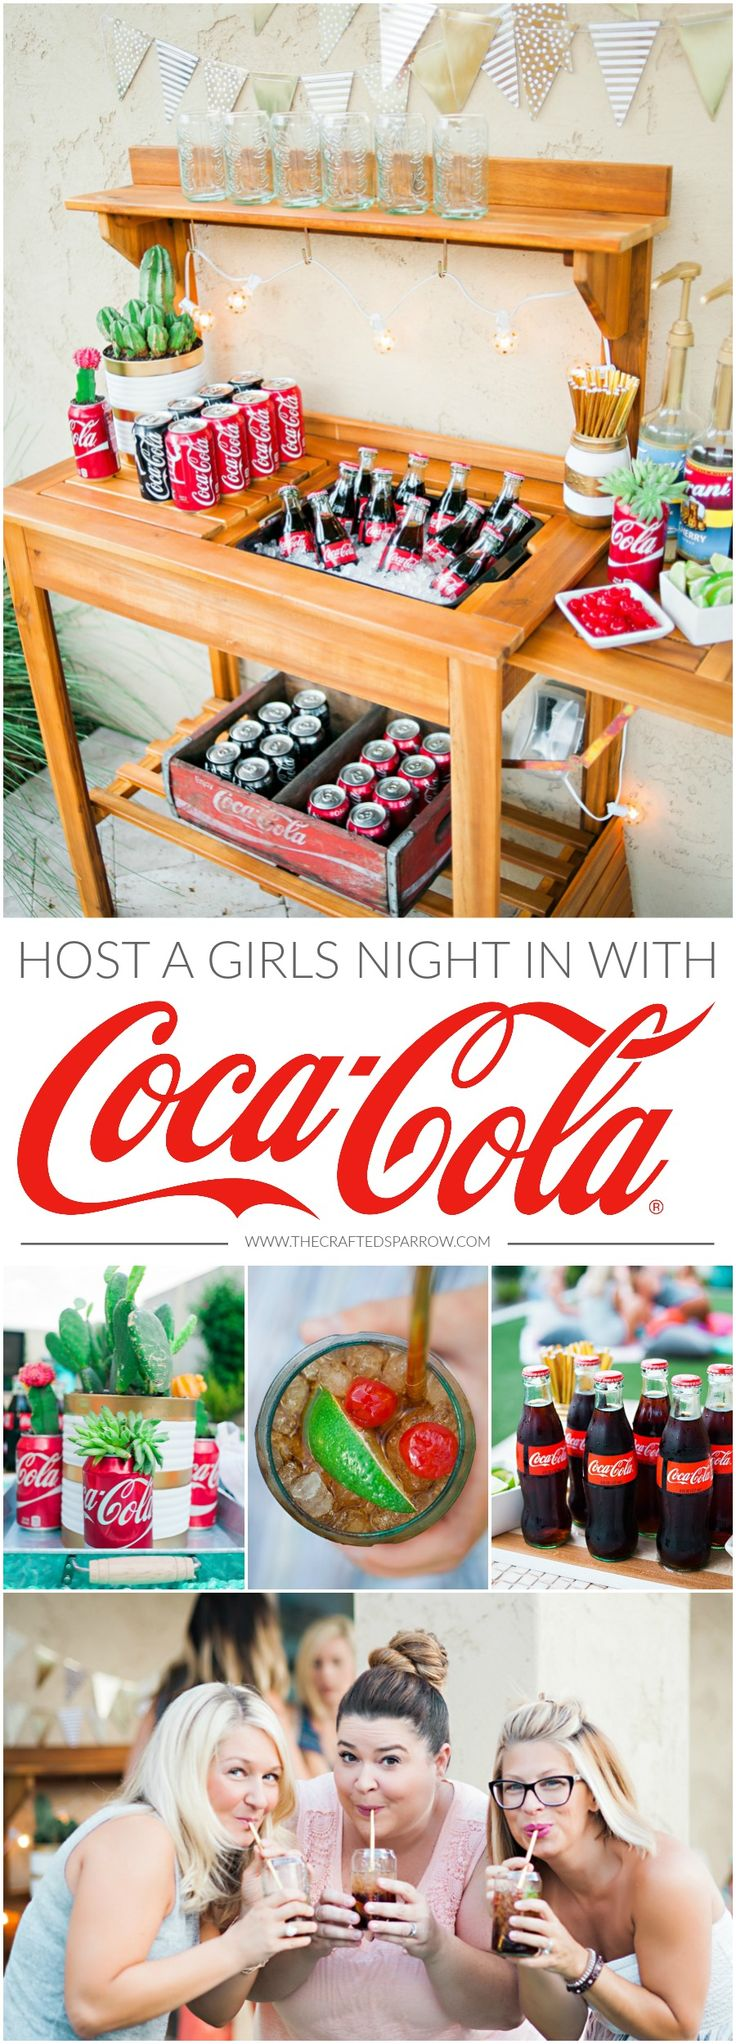 Girls Night In with Coca-Cola     #ThatsGold #ad @cocacola